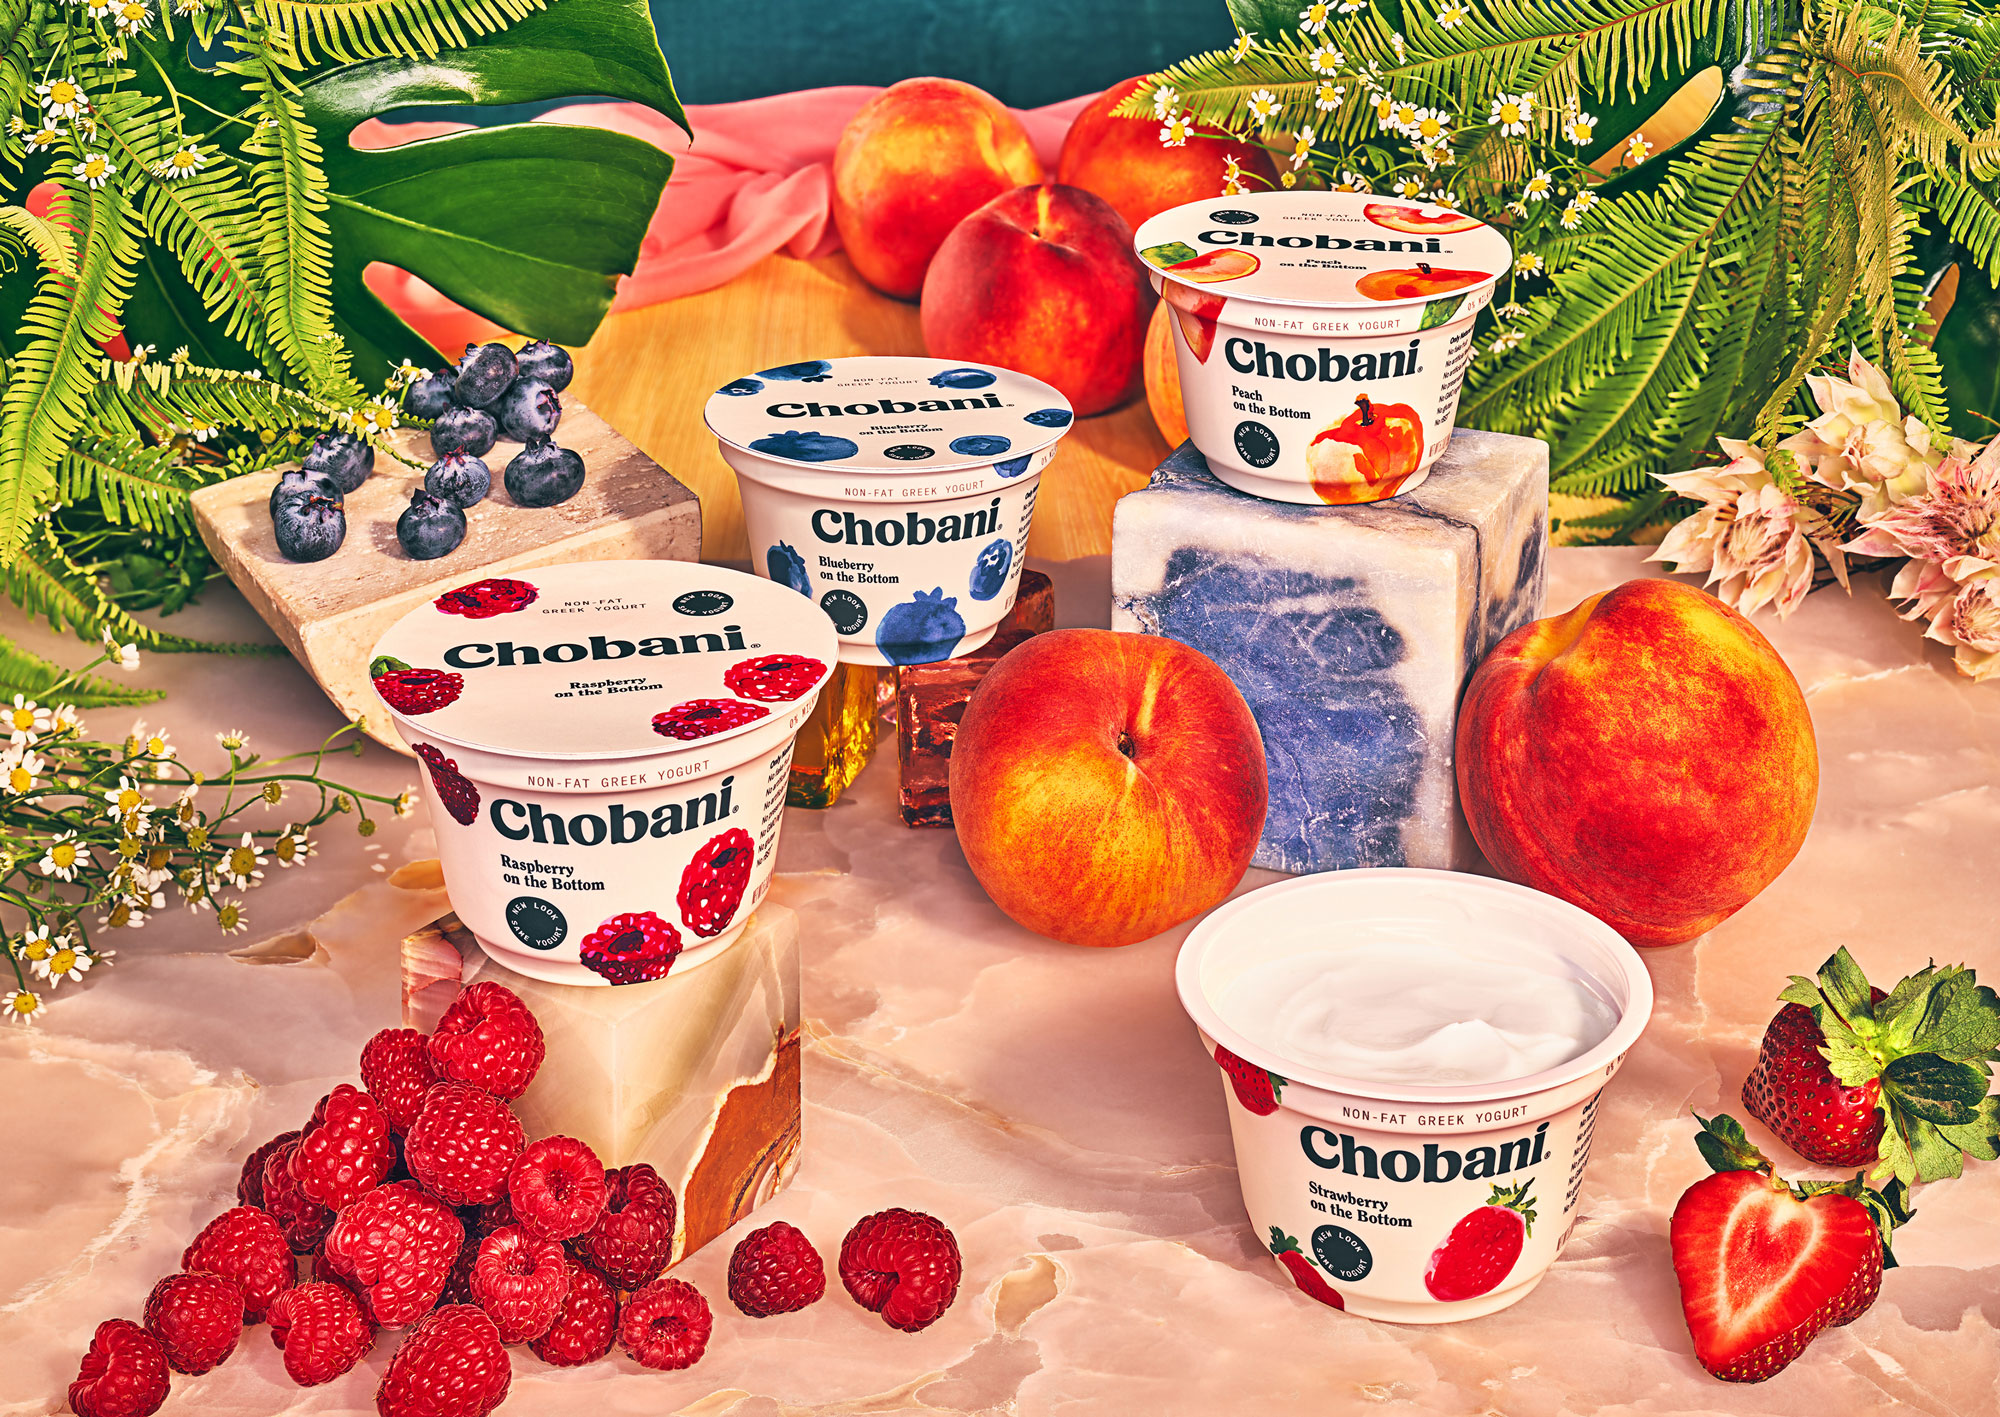 03_Chobani_Rebranding_Packaging.jpg